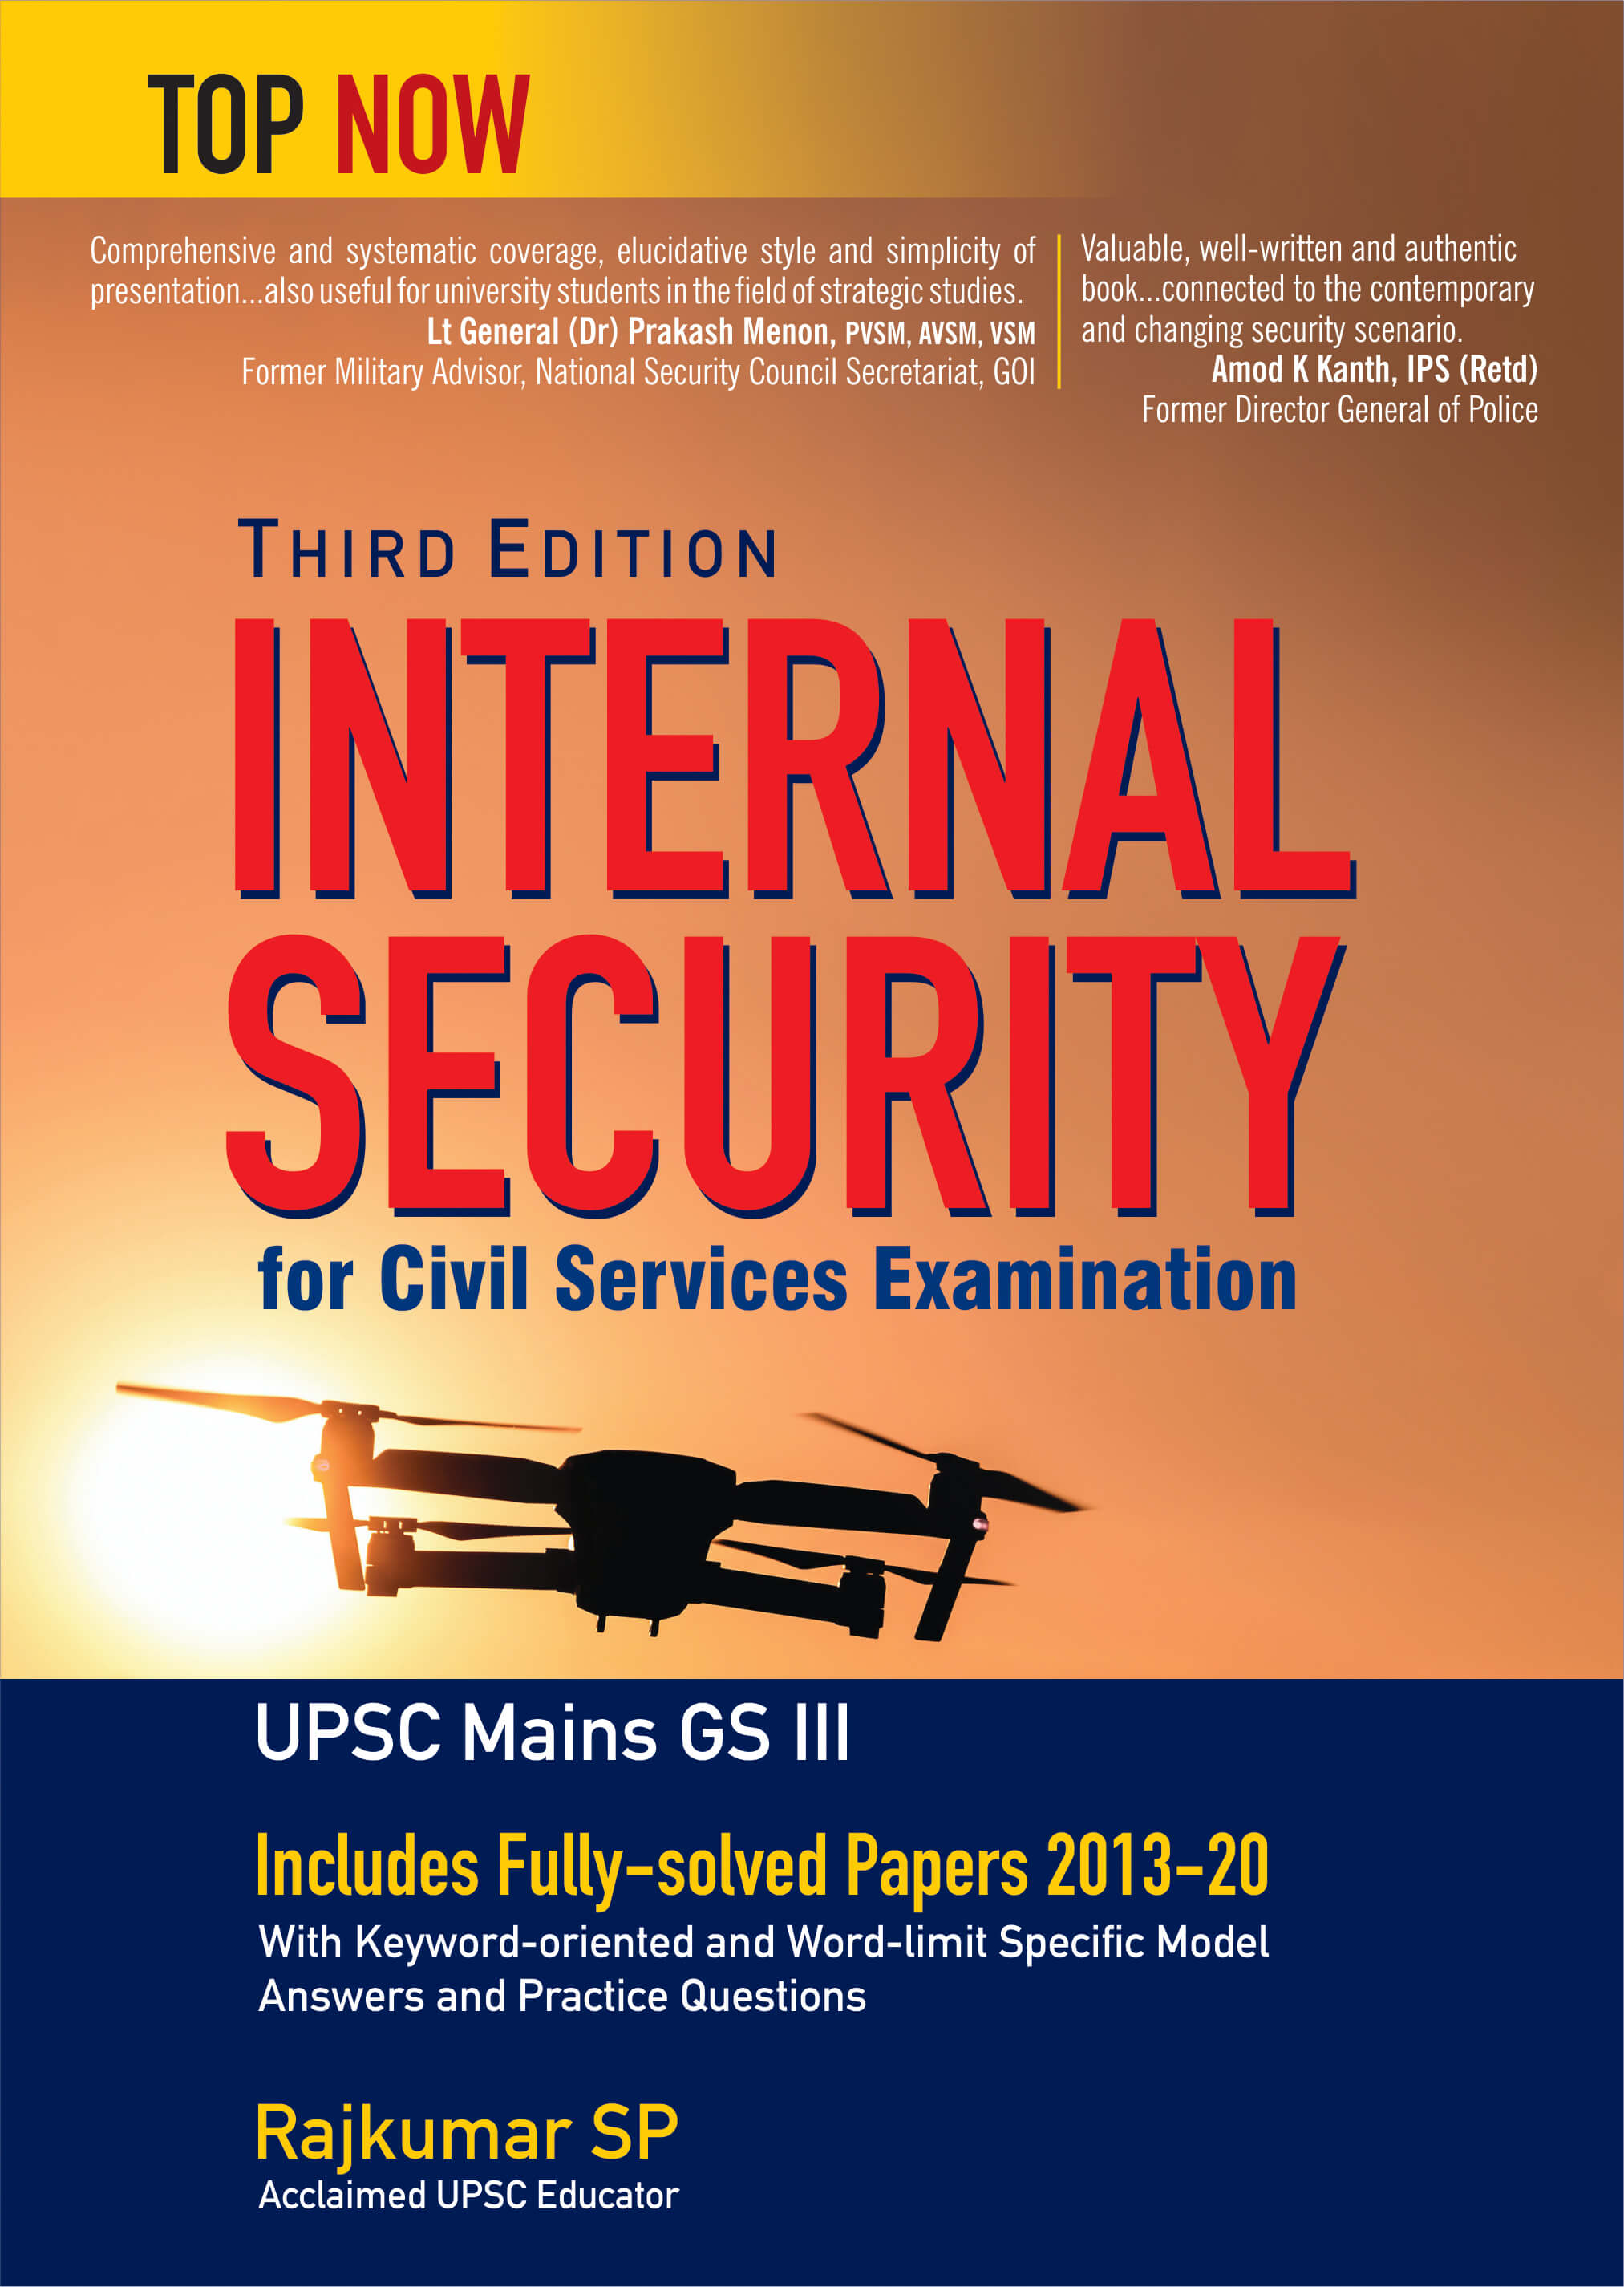 Internal Security For Civil Services Examination Third Edition: Includes Fully-Solved Papers 2013-20 (Top Now)